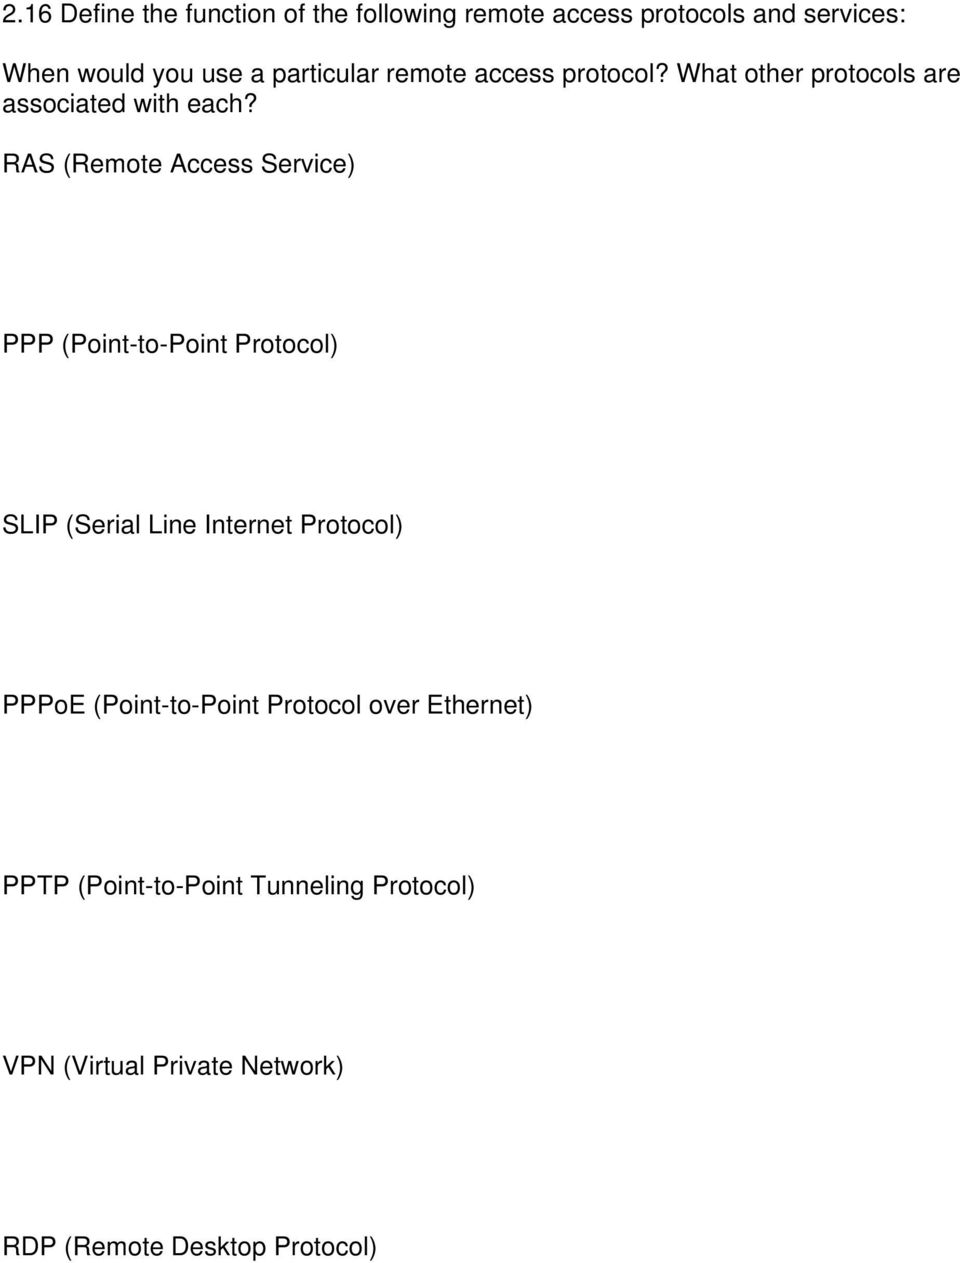 RAS (Remote Access Service) PPP (Point-to-Point Protocol) SLIP (Serial Line Internet Protocol) PPPoE